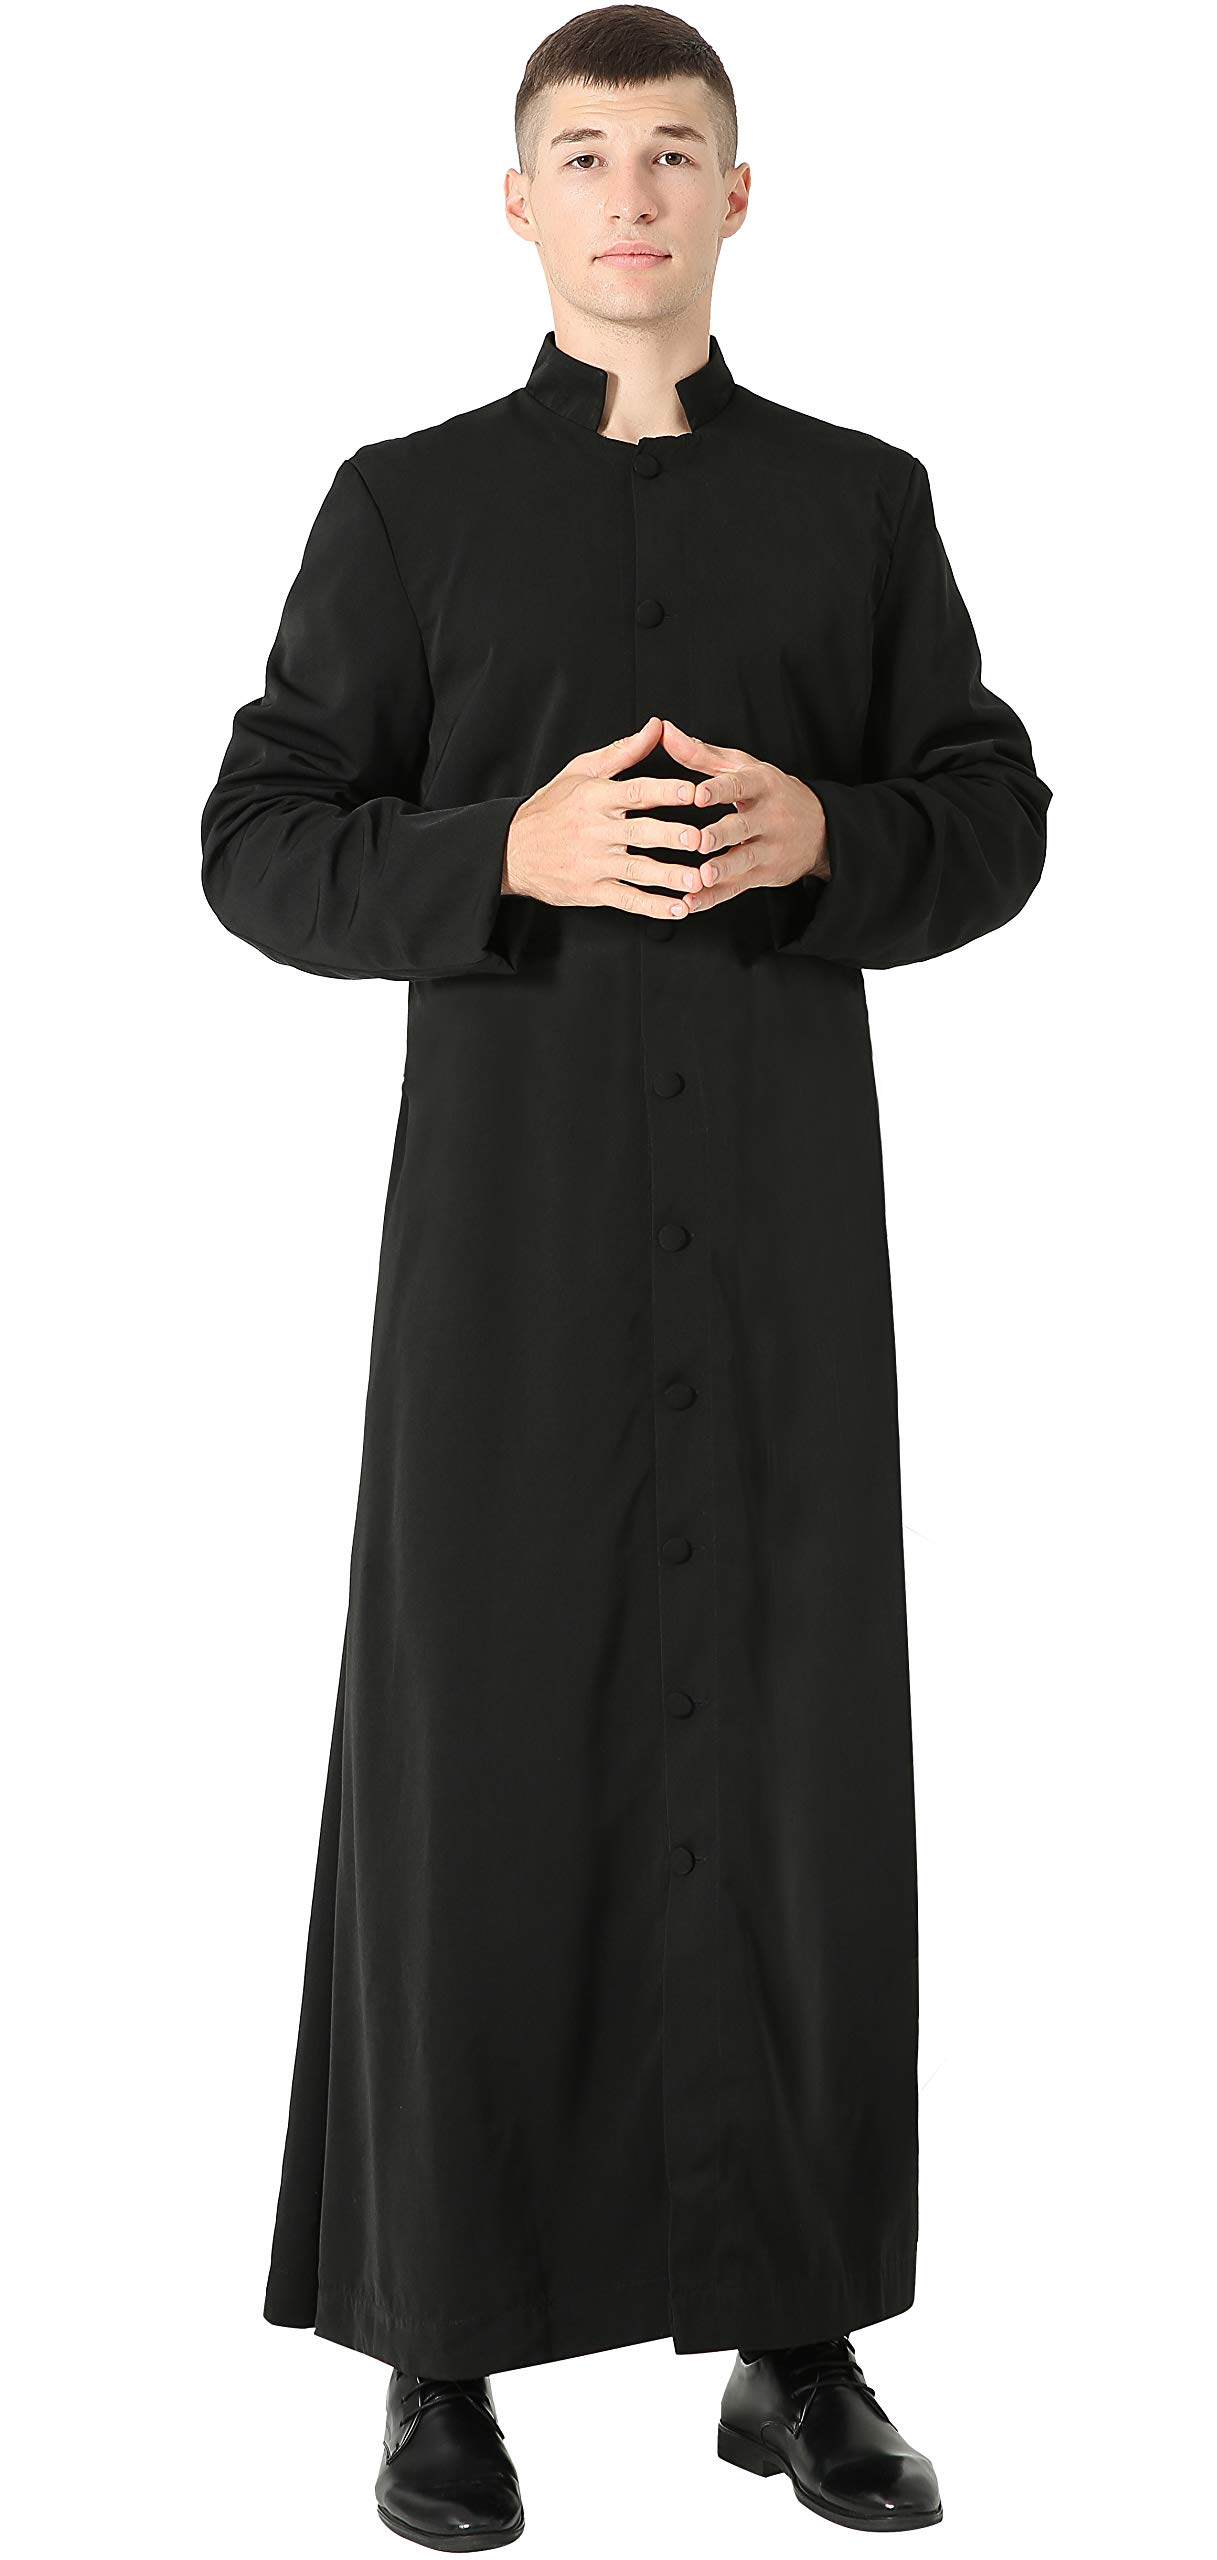 GraduatePro Clergy Roman Cassock Adults Liturgical Vestment Preacher Altar Server Style Single Breasted 3 Colors